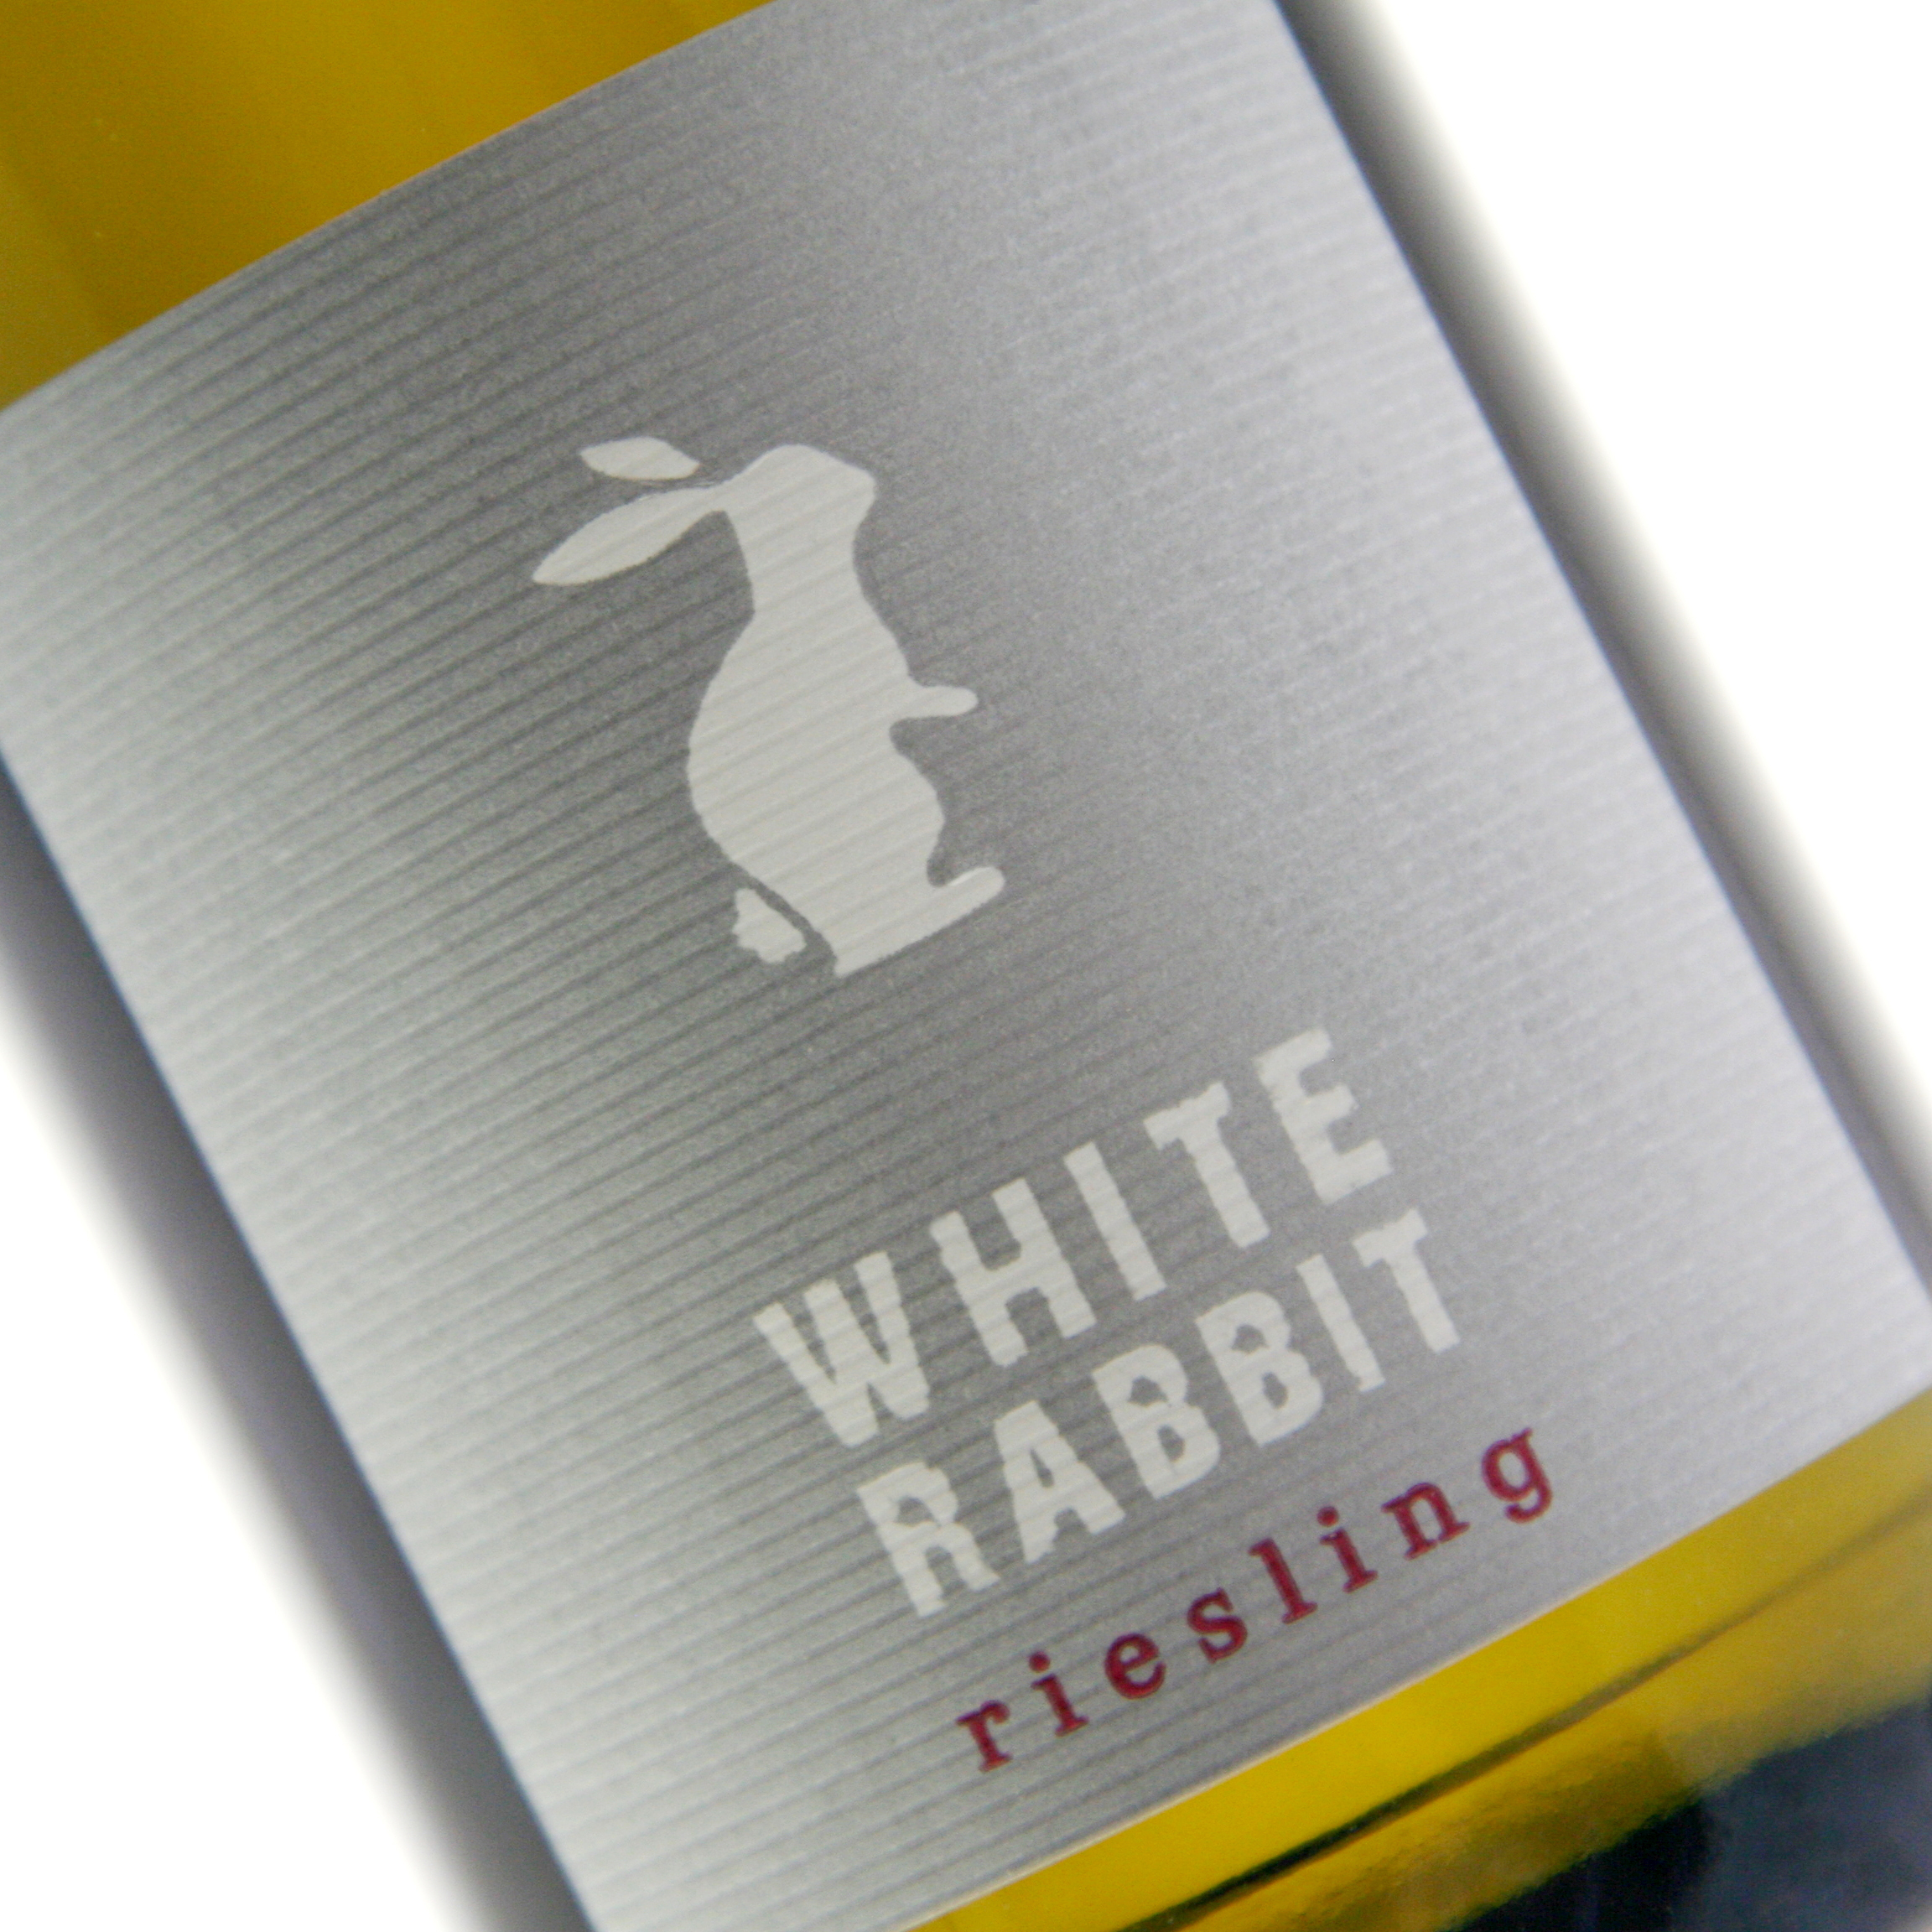 White Rabbit - Riesling 2020 75cl Bottle